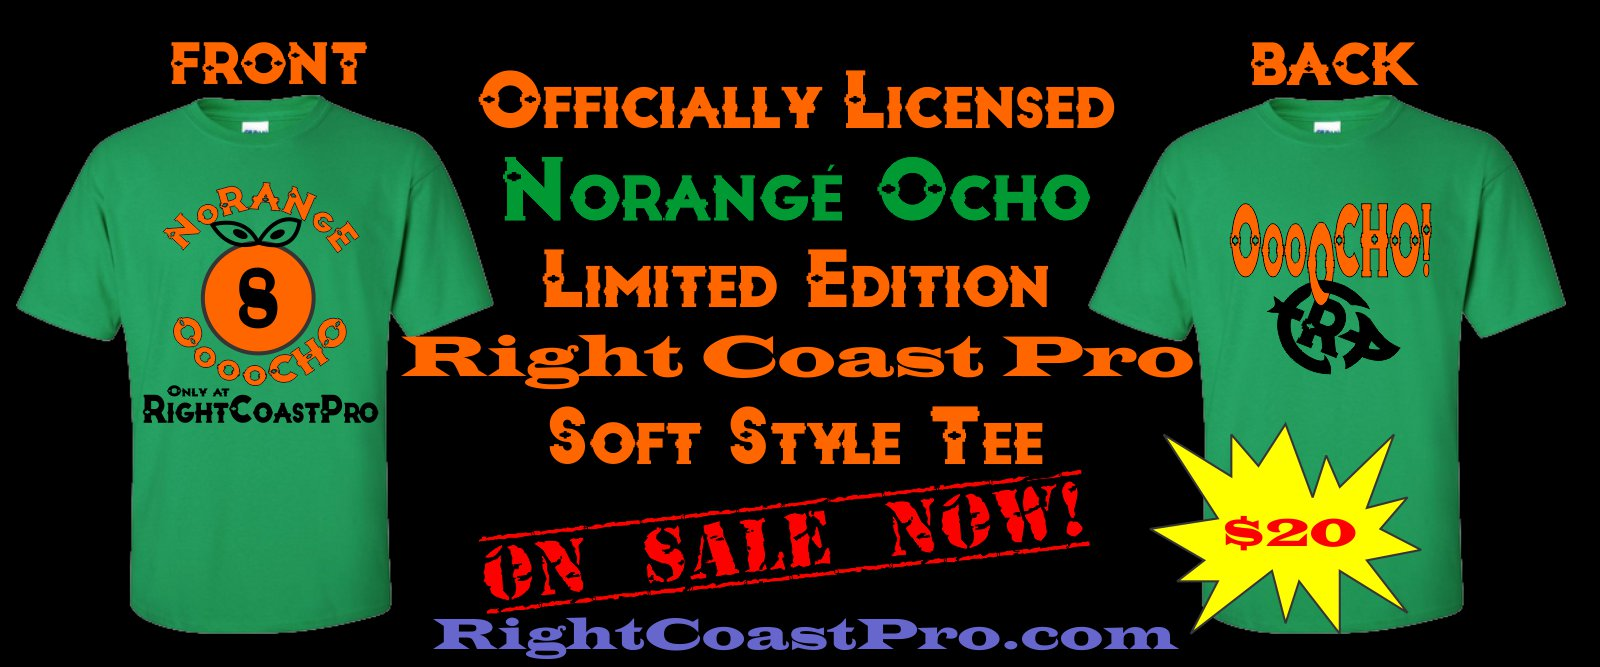 NorangeOcho Shirt RightCoastPro banner